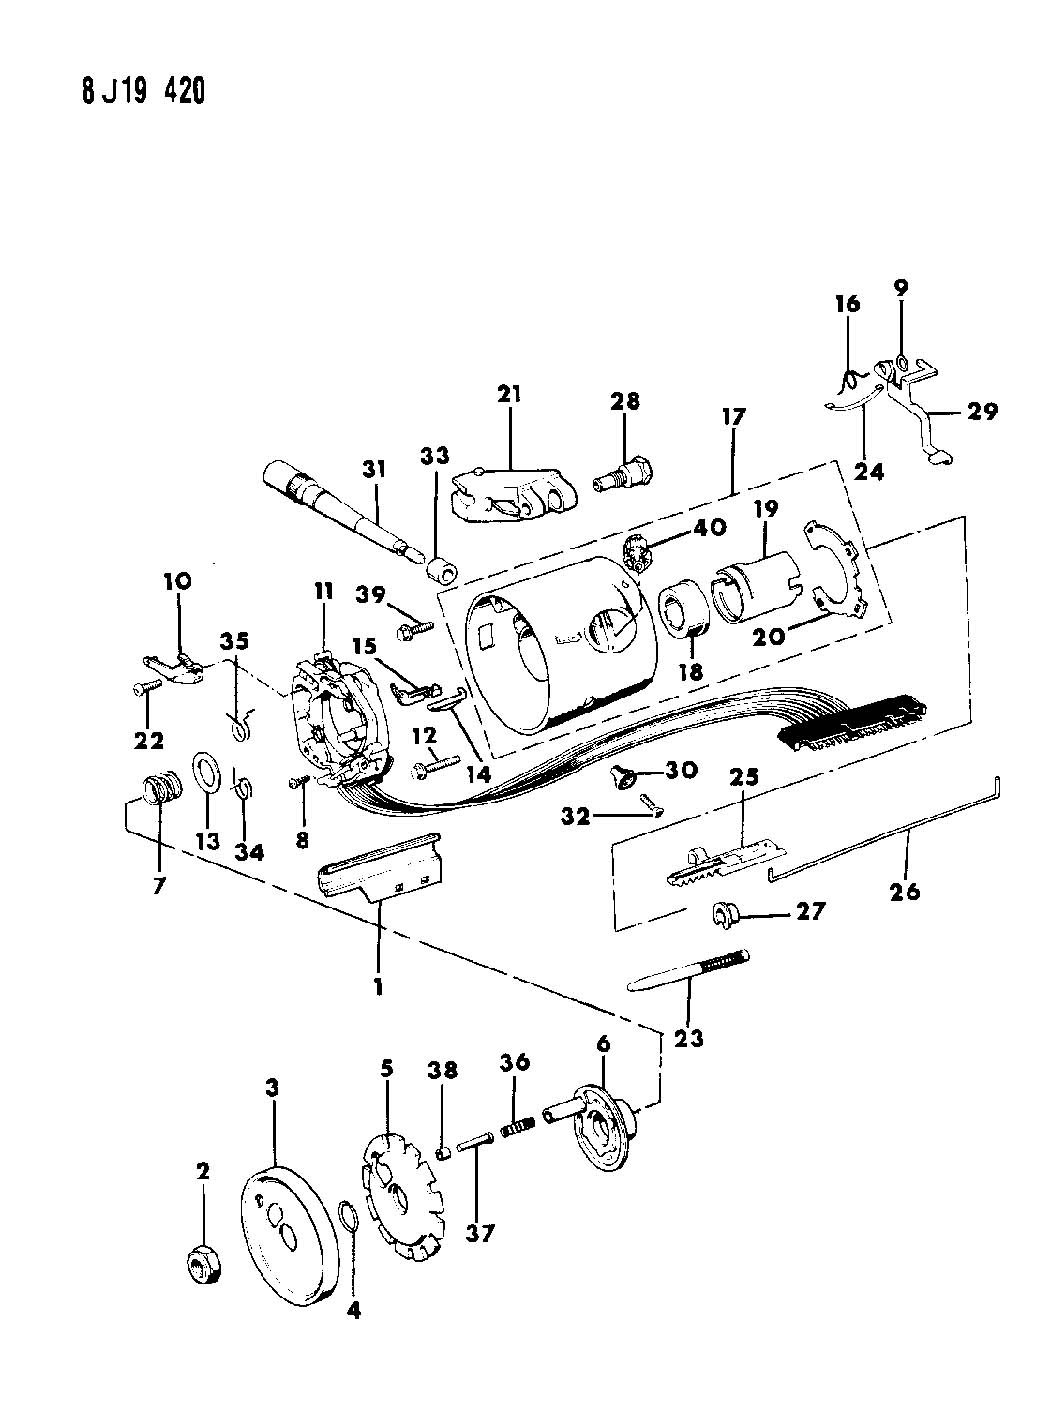 87 Jeep Wrangler Steering Column Diagram Wiring Schematic